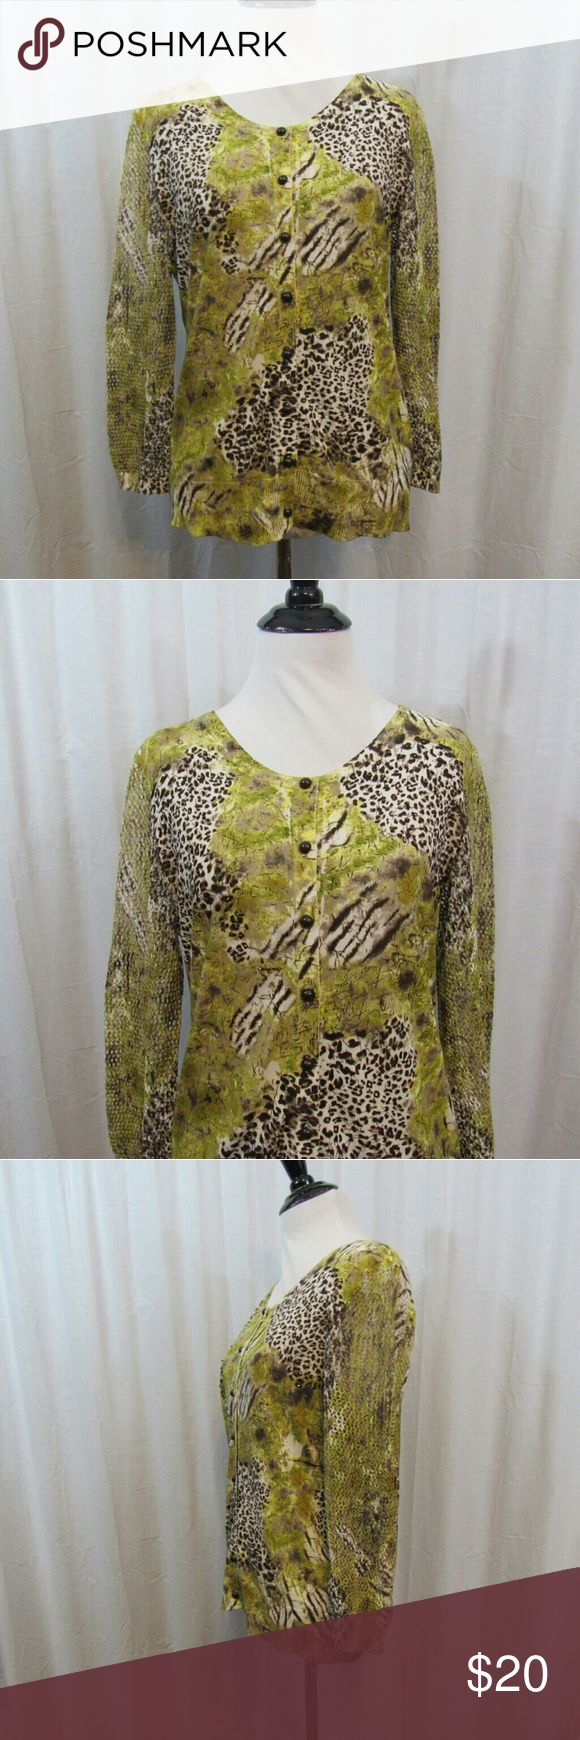 """Nygard Collection Animal Print Cardigan S Brand: Nygard Collection Size: S Material: 55% Cotton 45% Rayon Care Instructions: Hand Wash  Bust: 36"""" Sleeves: 20"""" Length: 24""""  All clothes are in excellent used condition. No tears, stains or holes unless otherwise I noted.   P74 Nygard Collection Tops"""